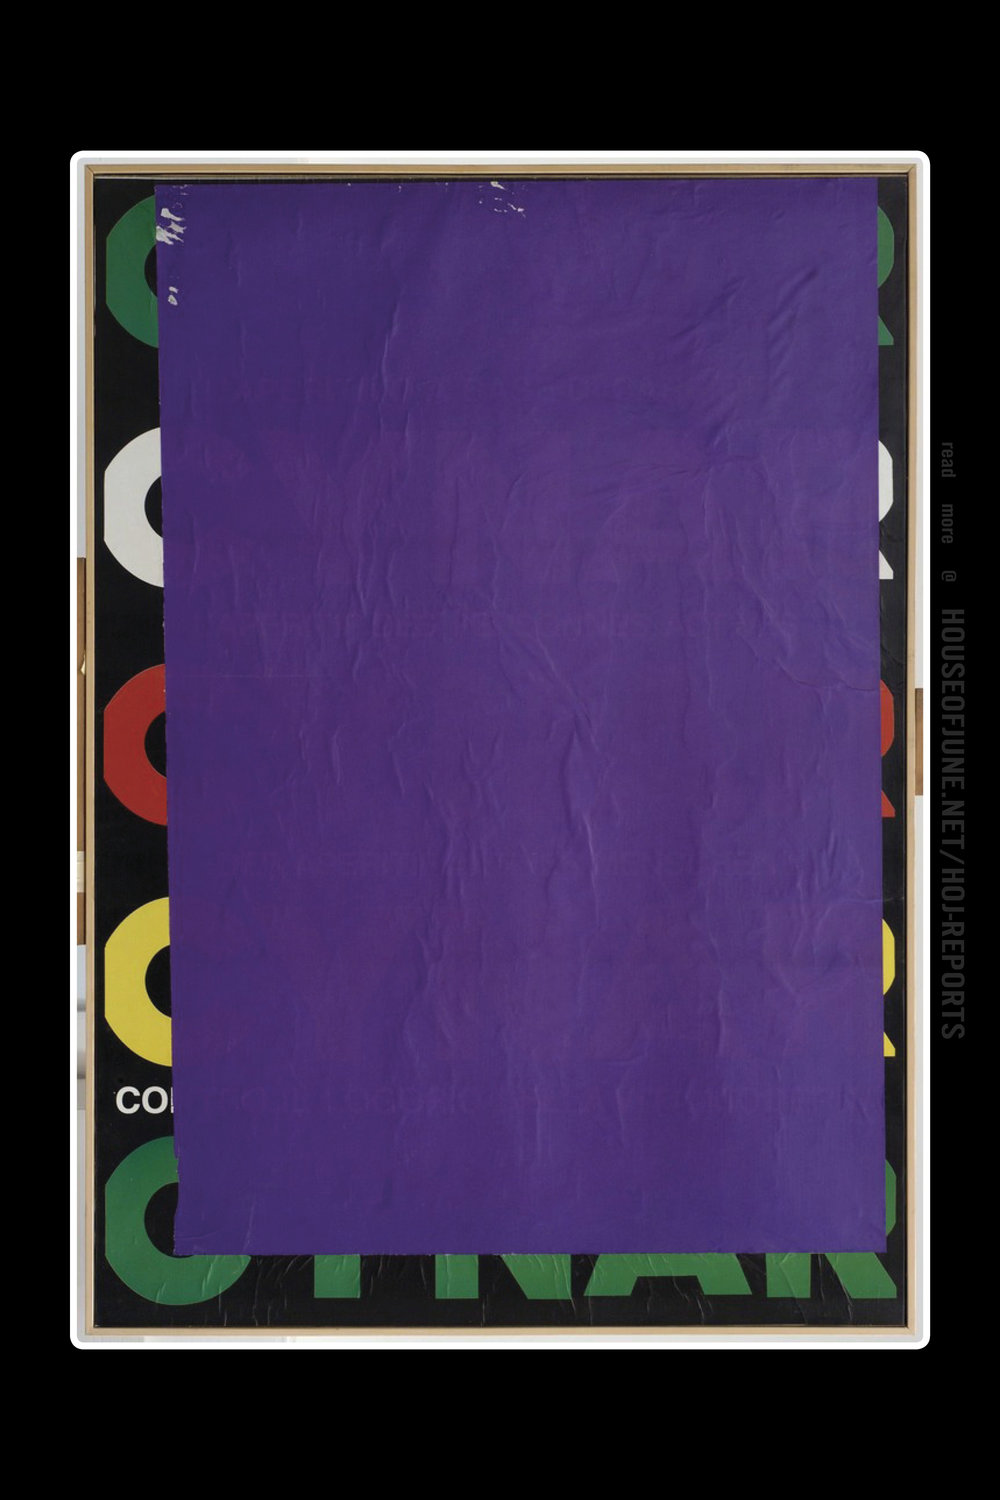 Mimmo Rotella   (Blank on Canvas)  Blank C Blue Violet, 1980